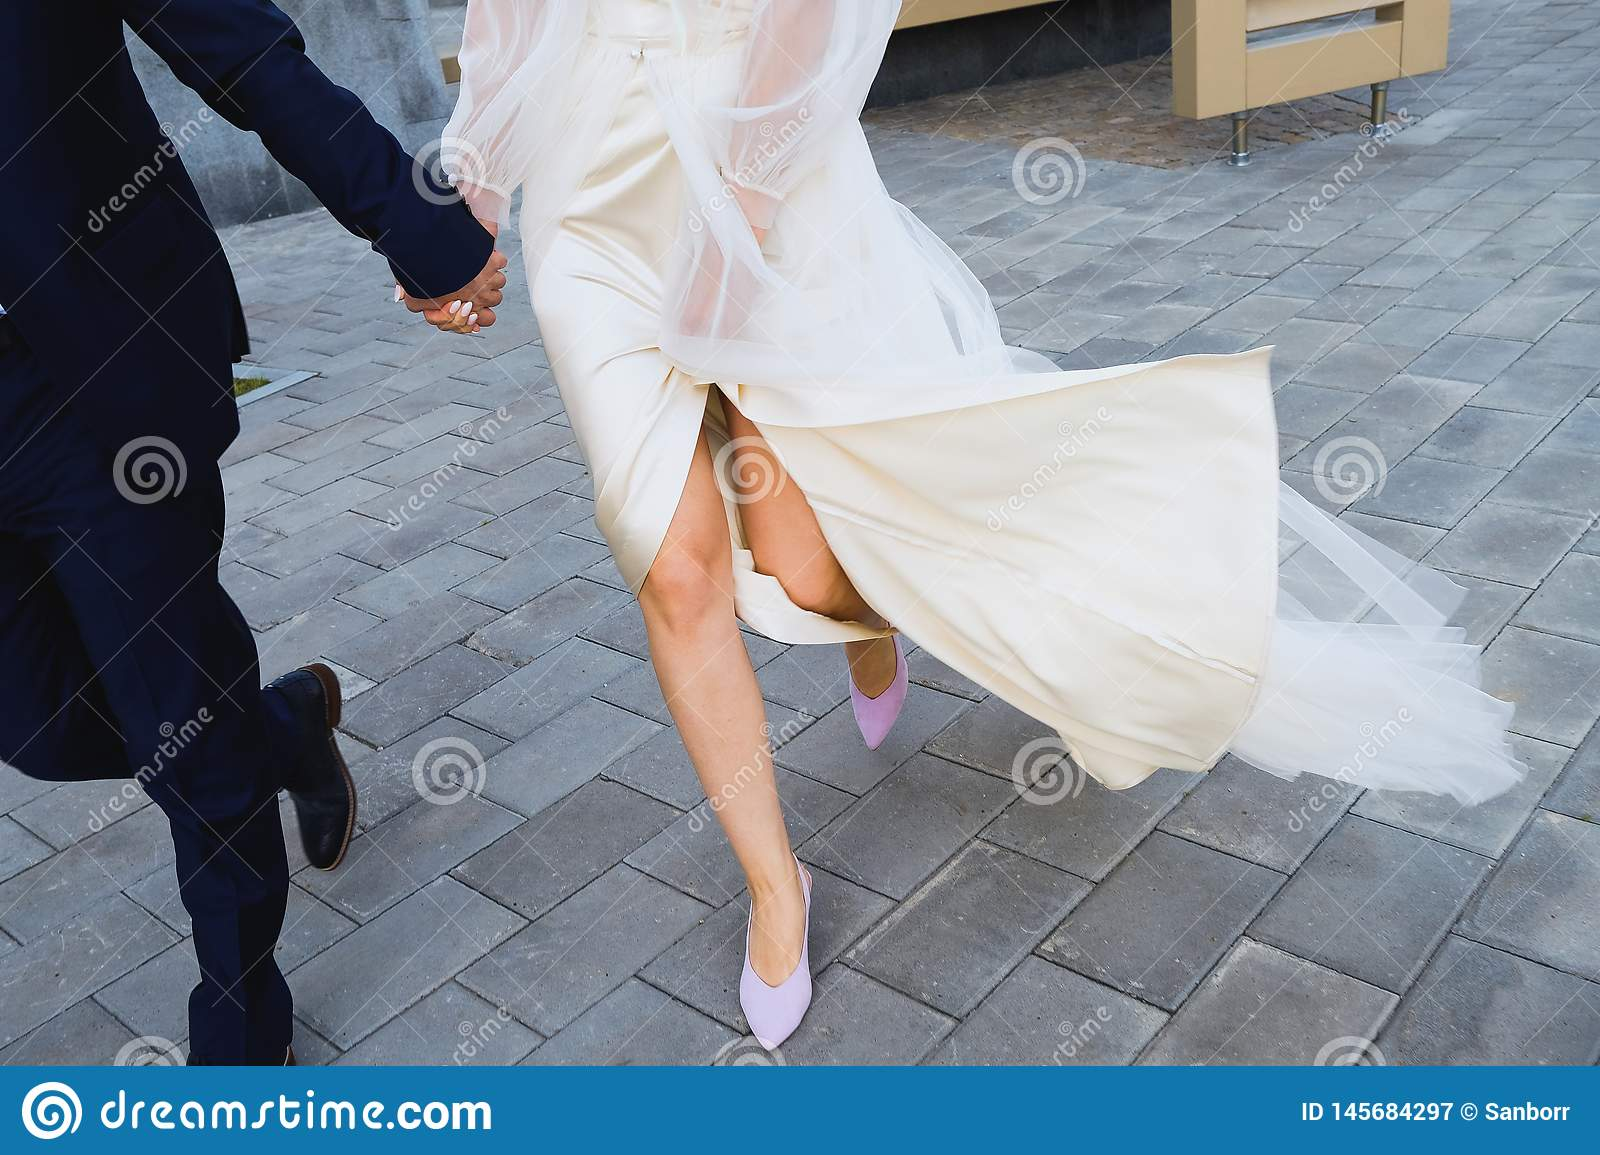 The bride and groom are on the sidewalk, legs close-up